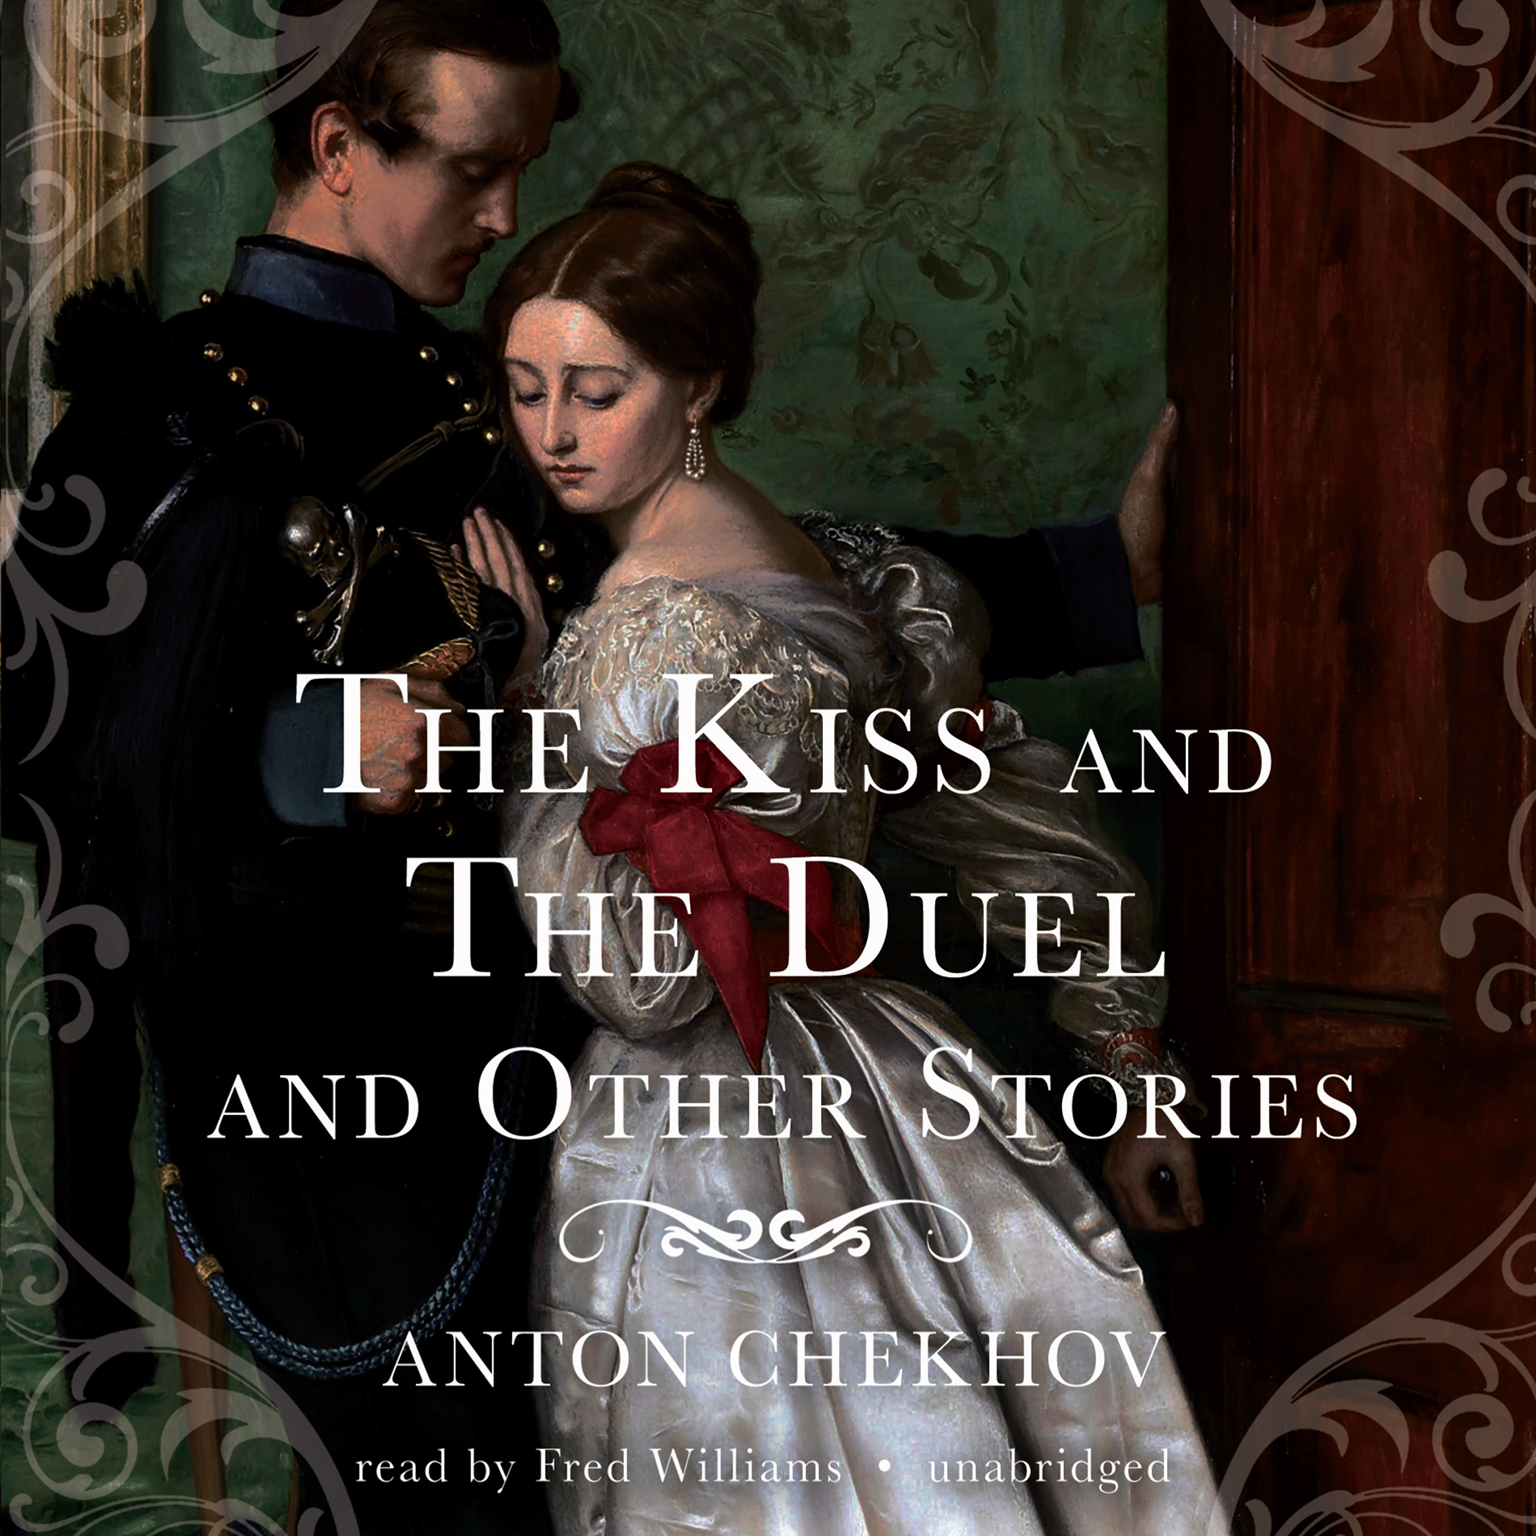 Printable The Kiss and The Duel and Other Stories Audiobook Cover Art